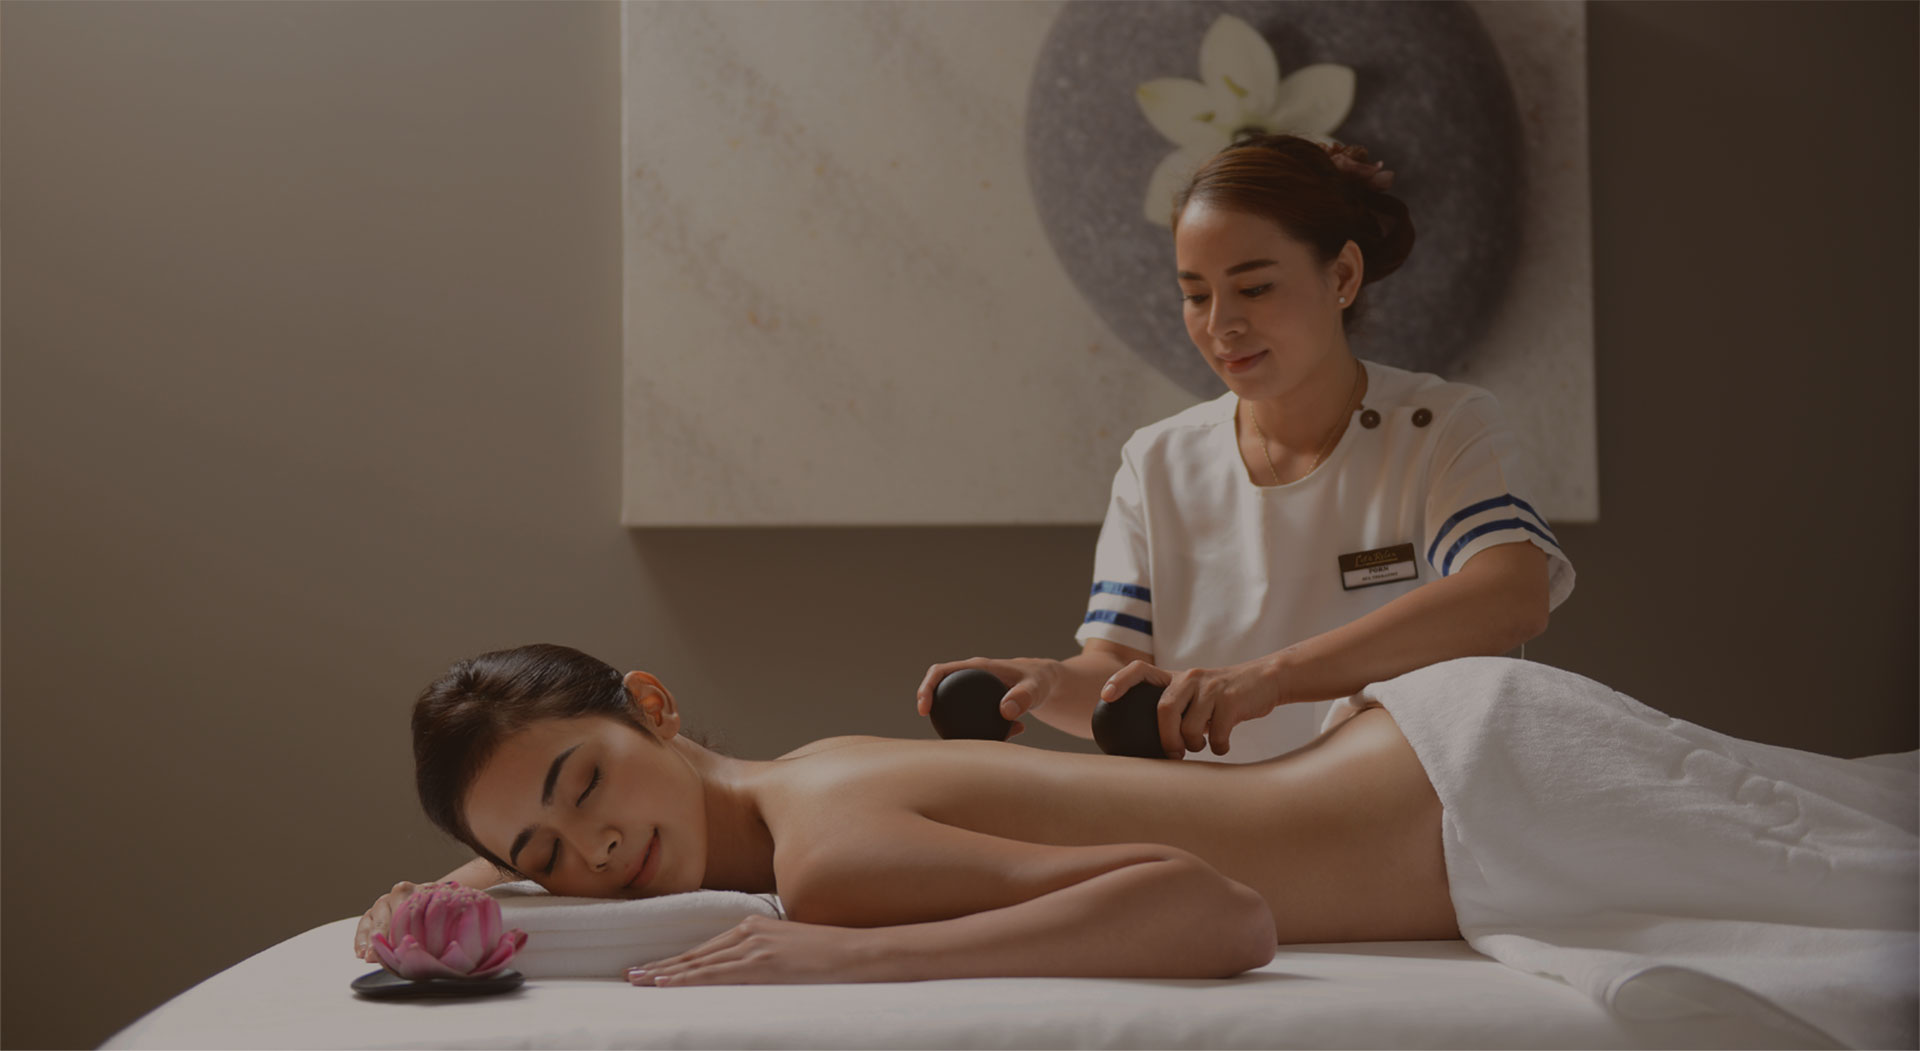 Let's Relax Spa 体验